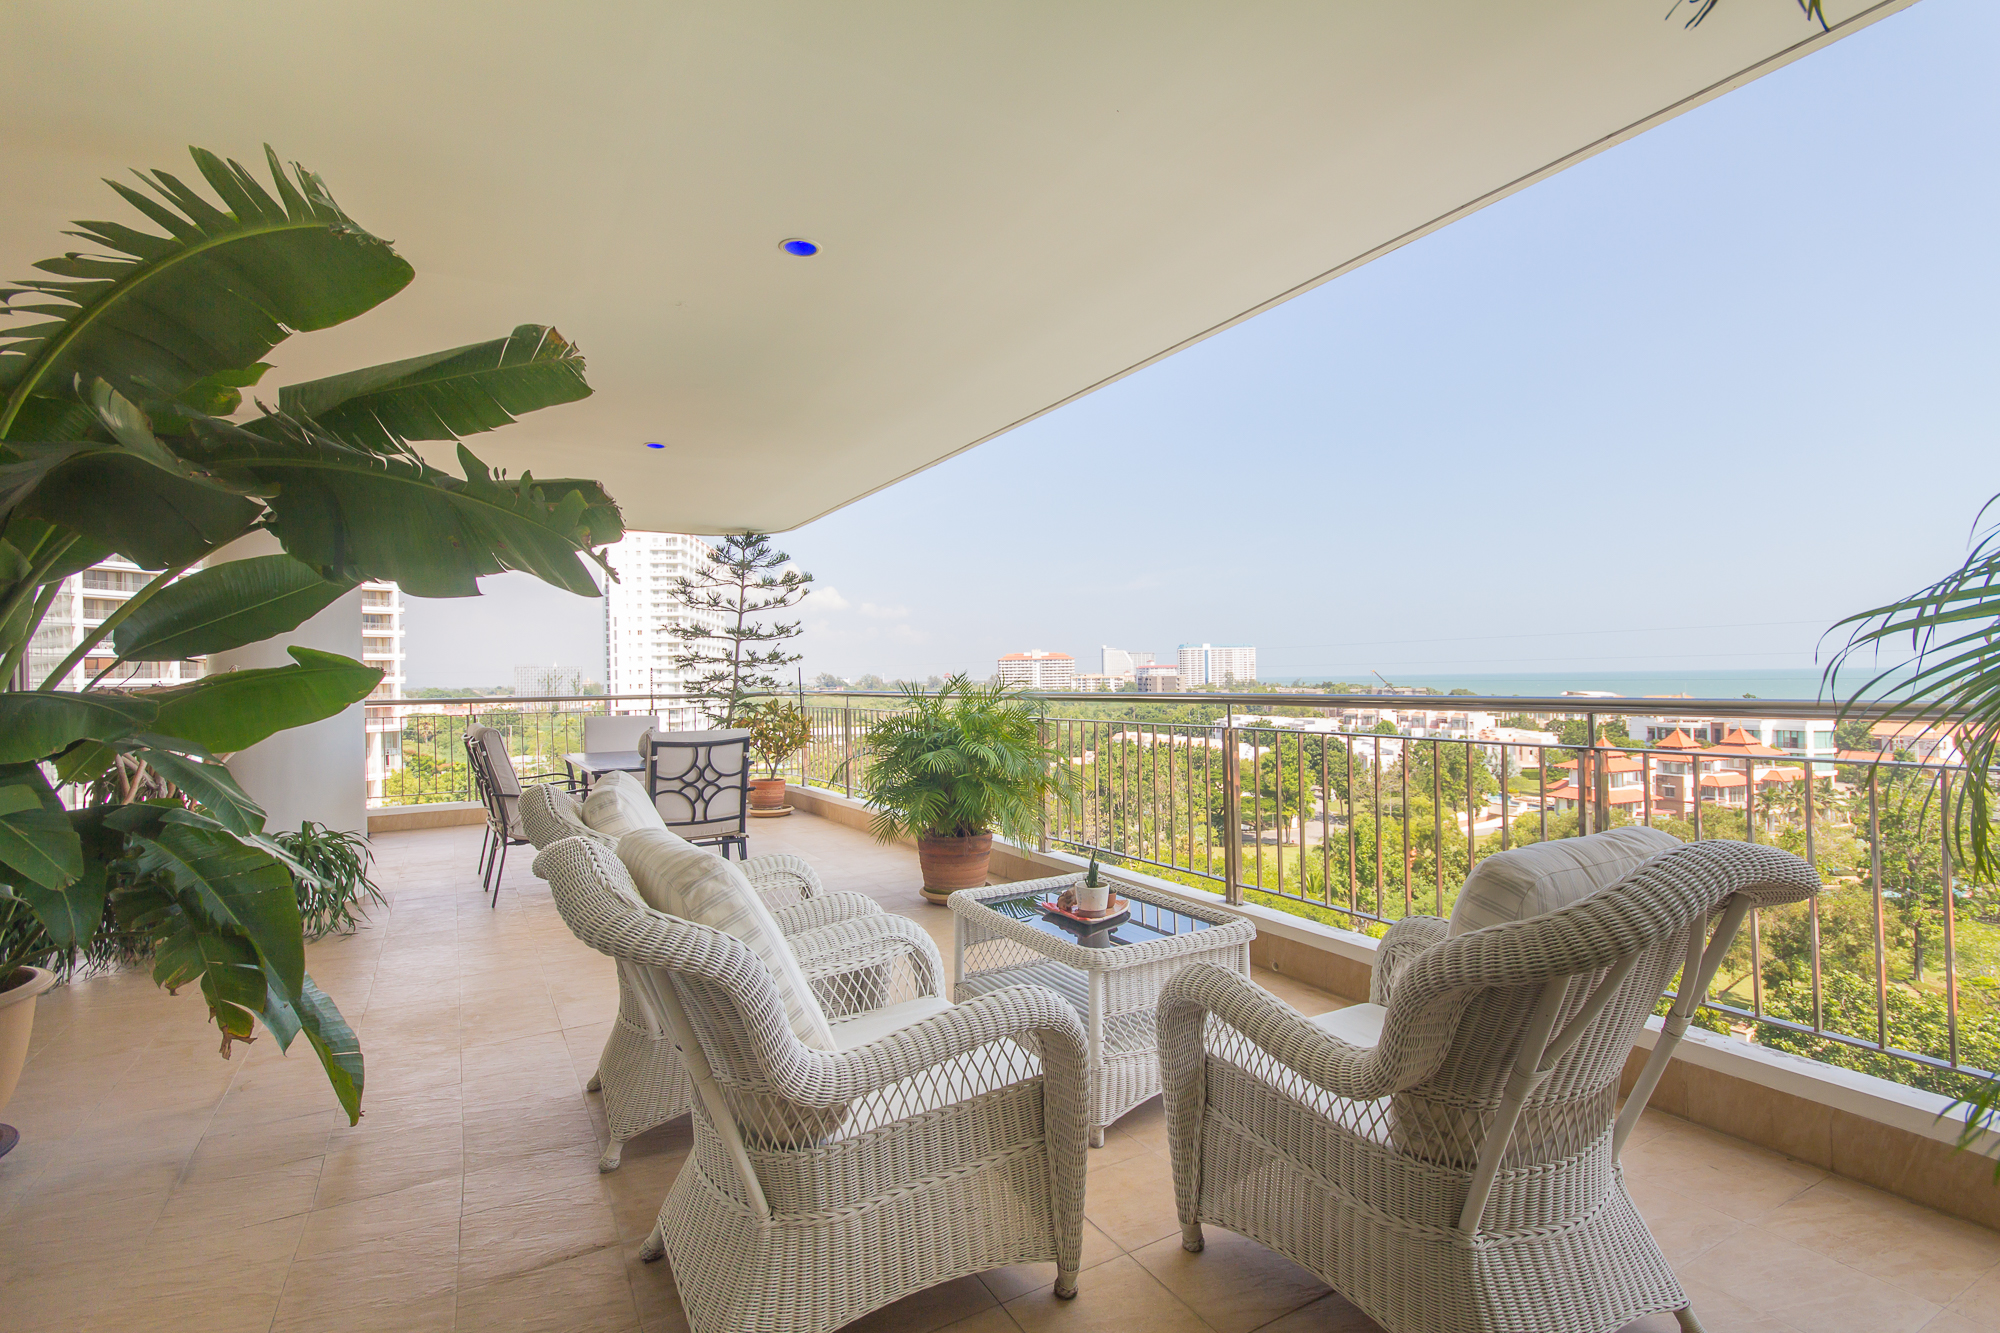 3 Bedrooms Unit at Boat House Condominium with Sea View for Sale